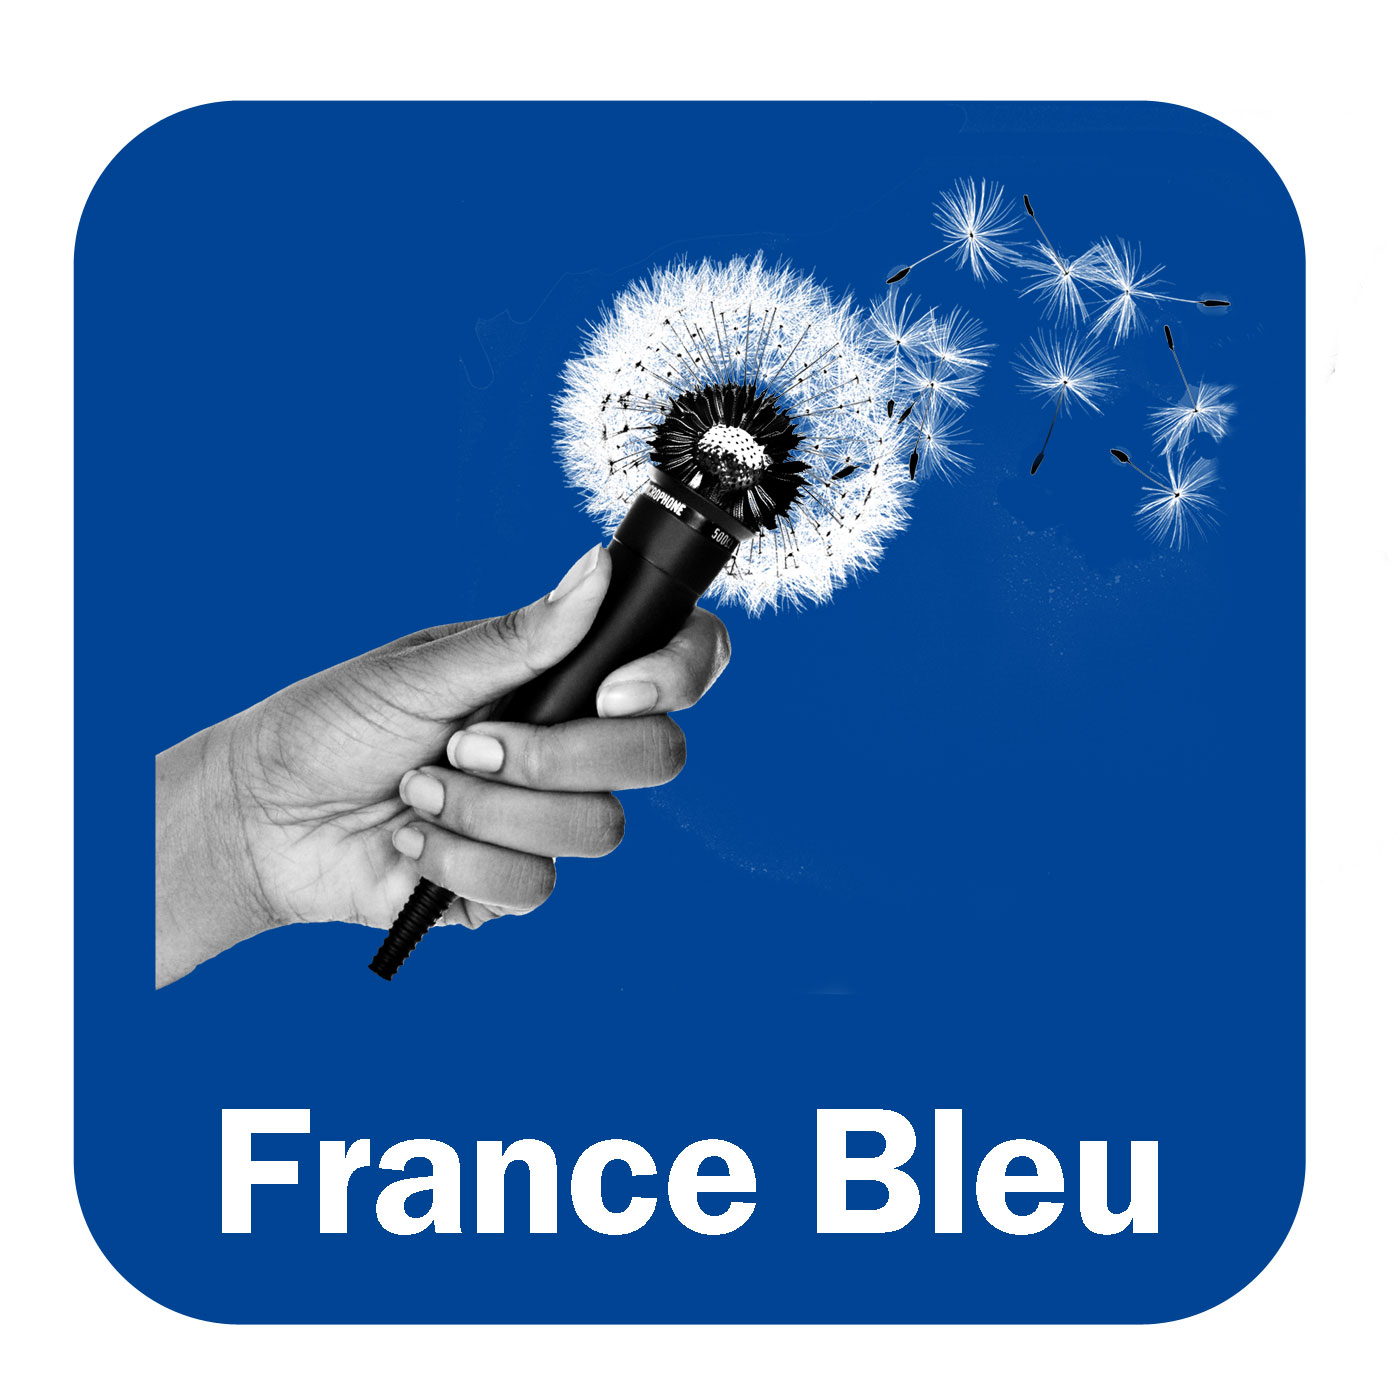 Les Experts Jardiniers France Bleu Berry